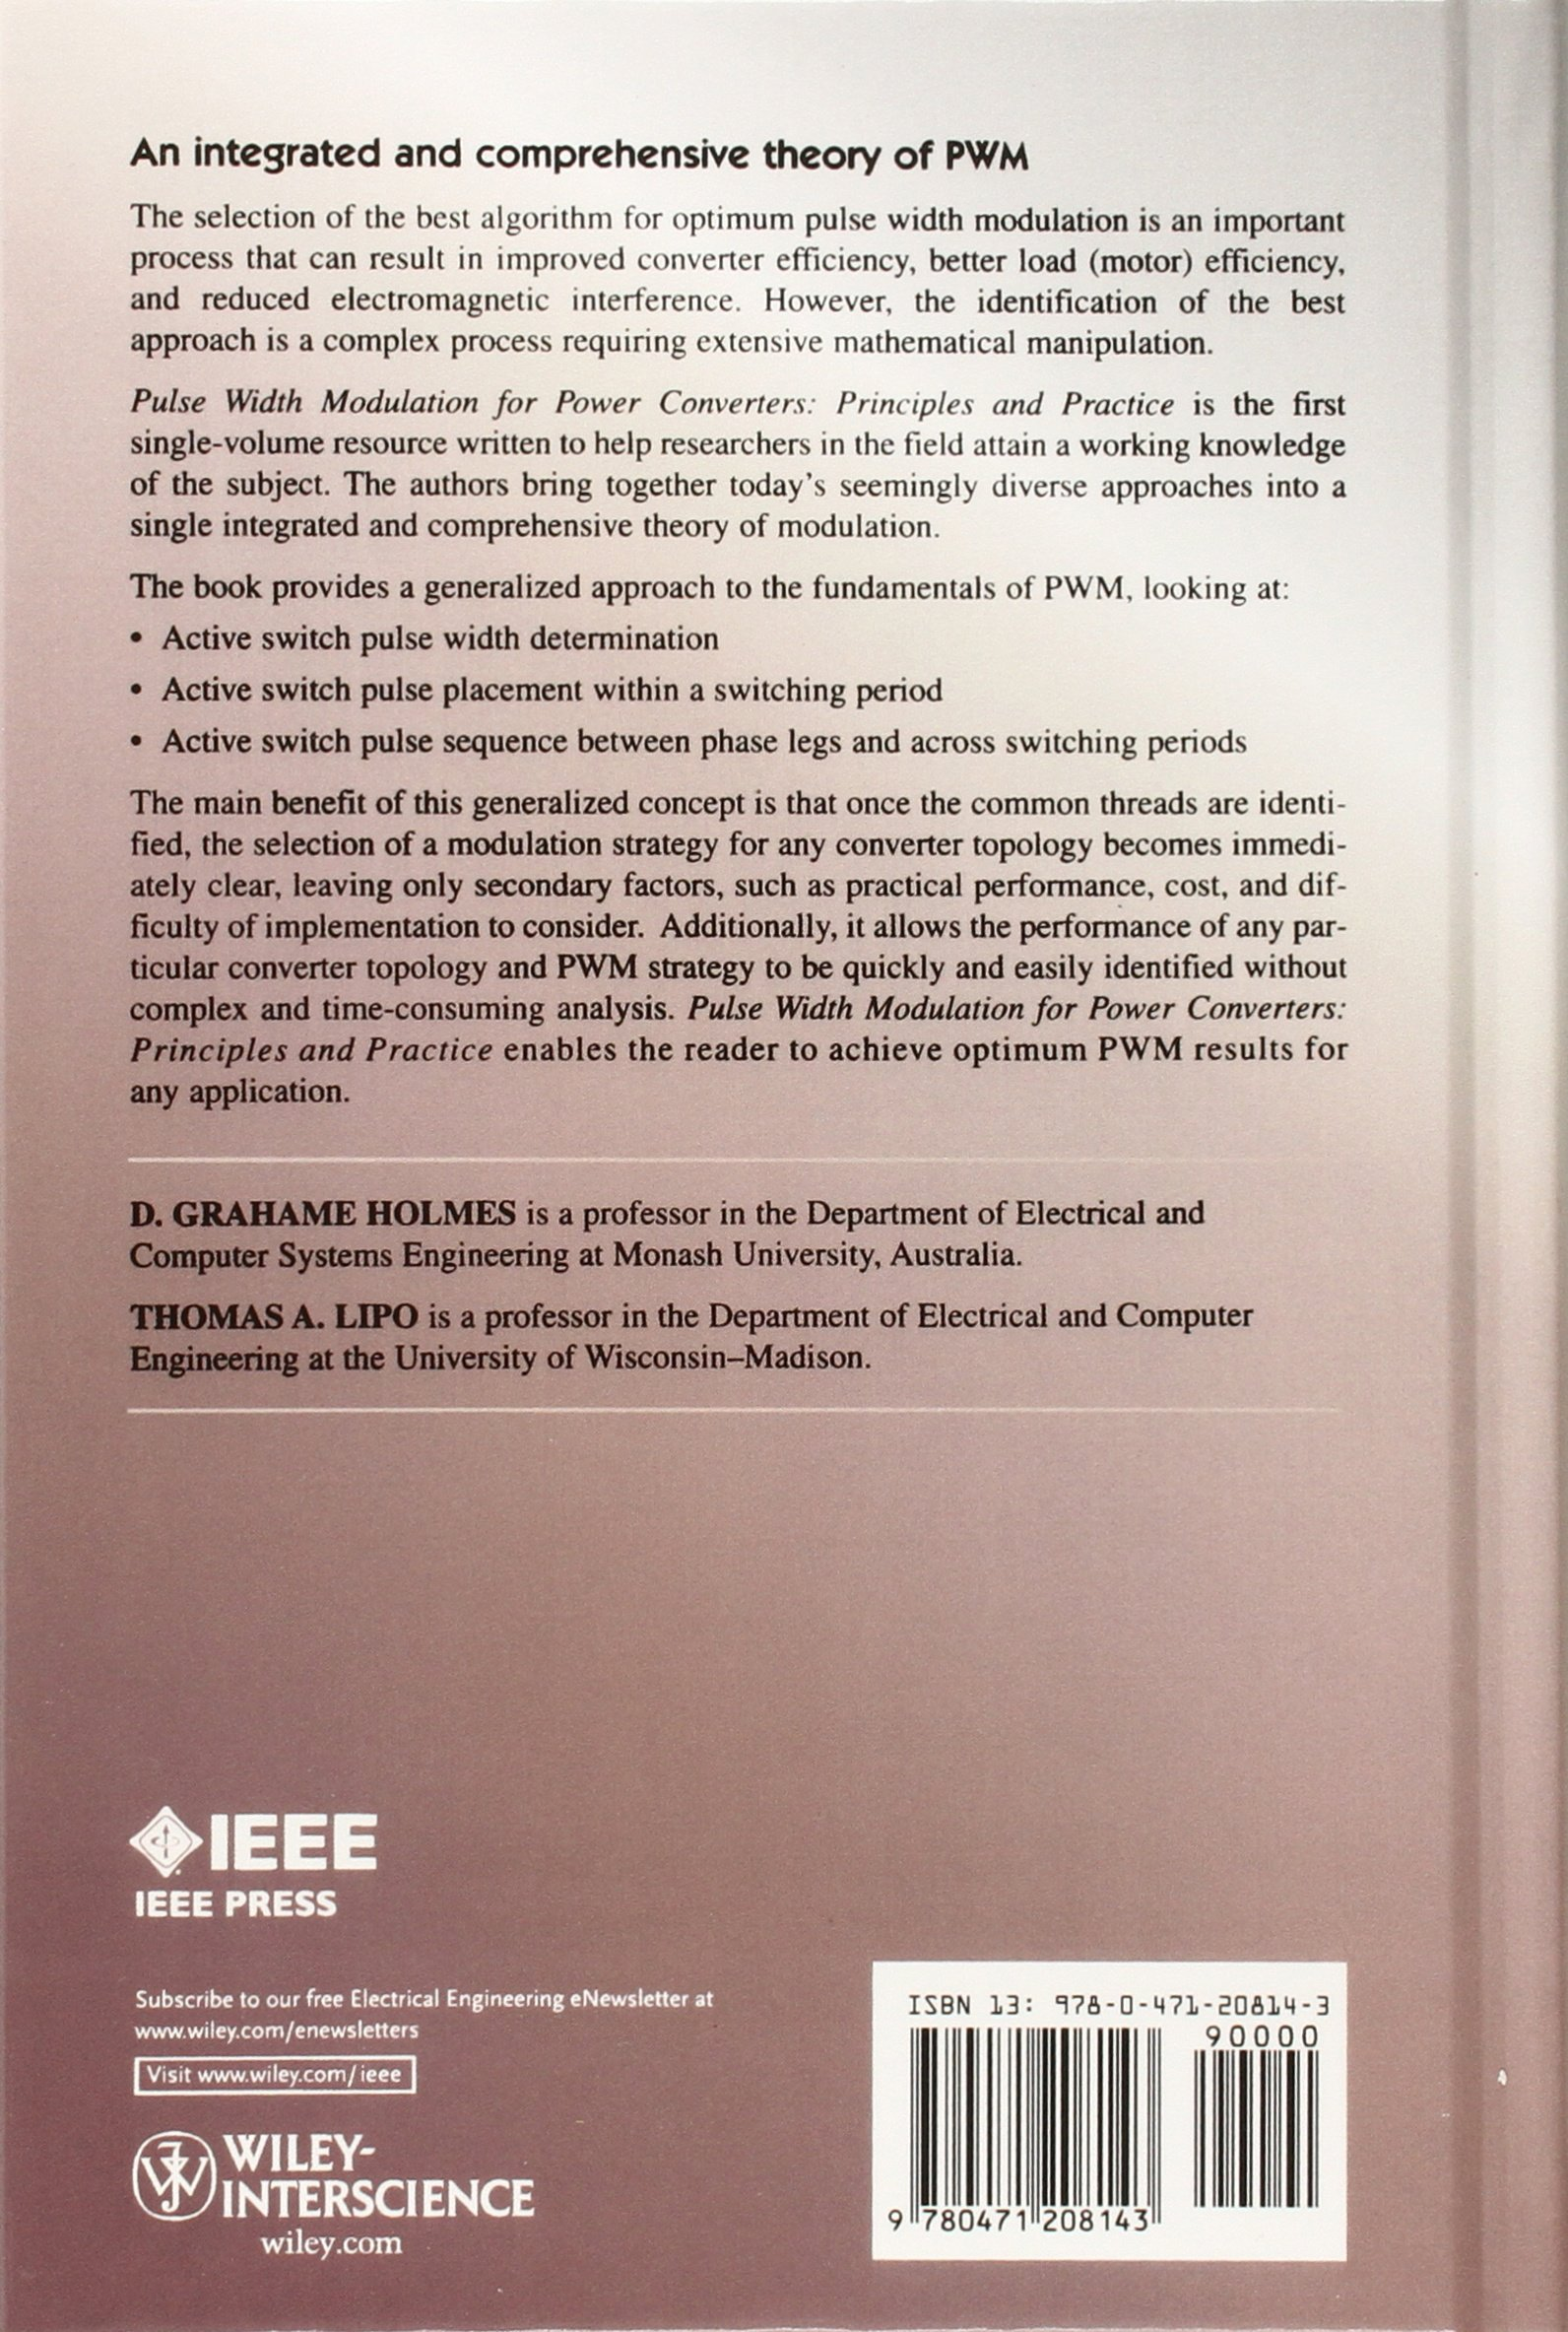 Pulse Width Modulation For Power Converters Principles And Practice 8211 What Is It Ieee Series On Engineering D Grahame Holmes Thomas A Lipo